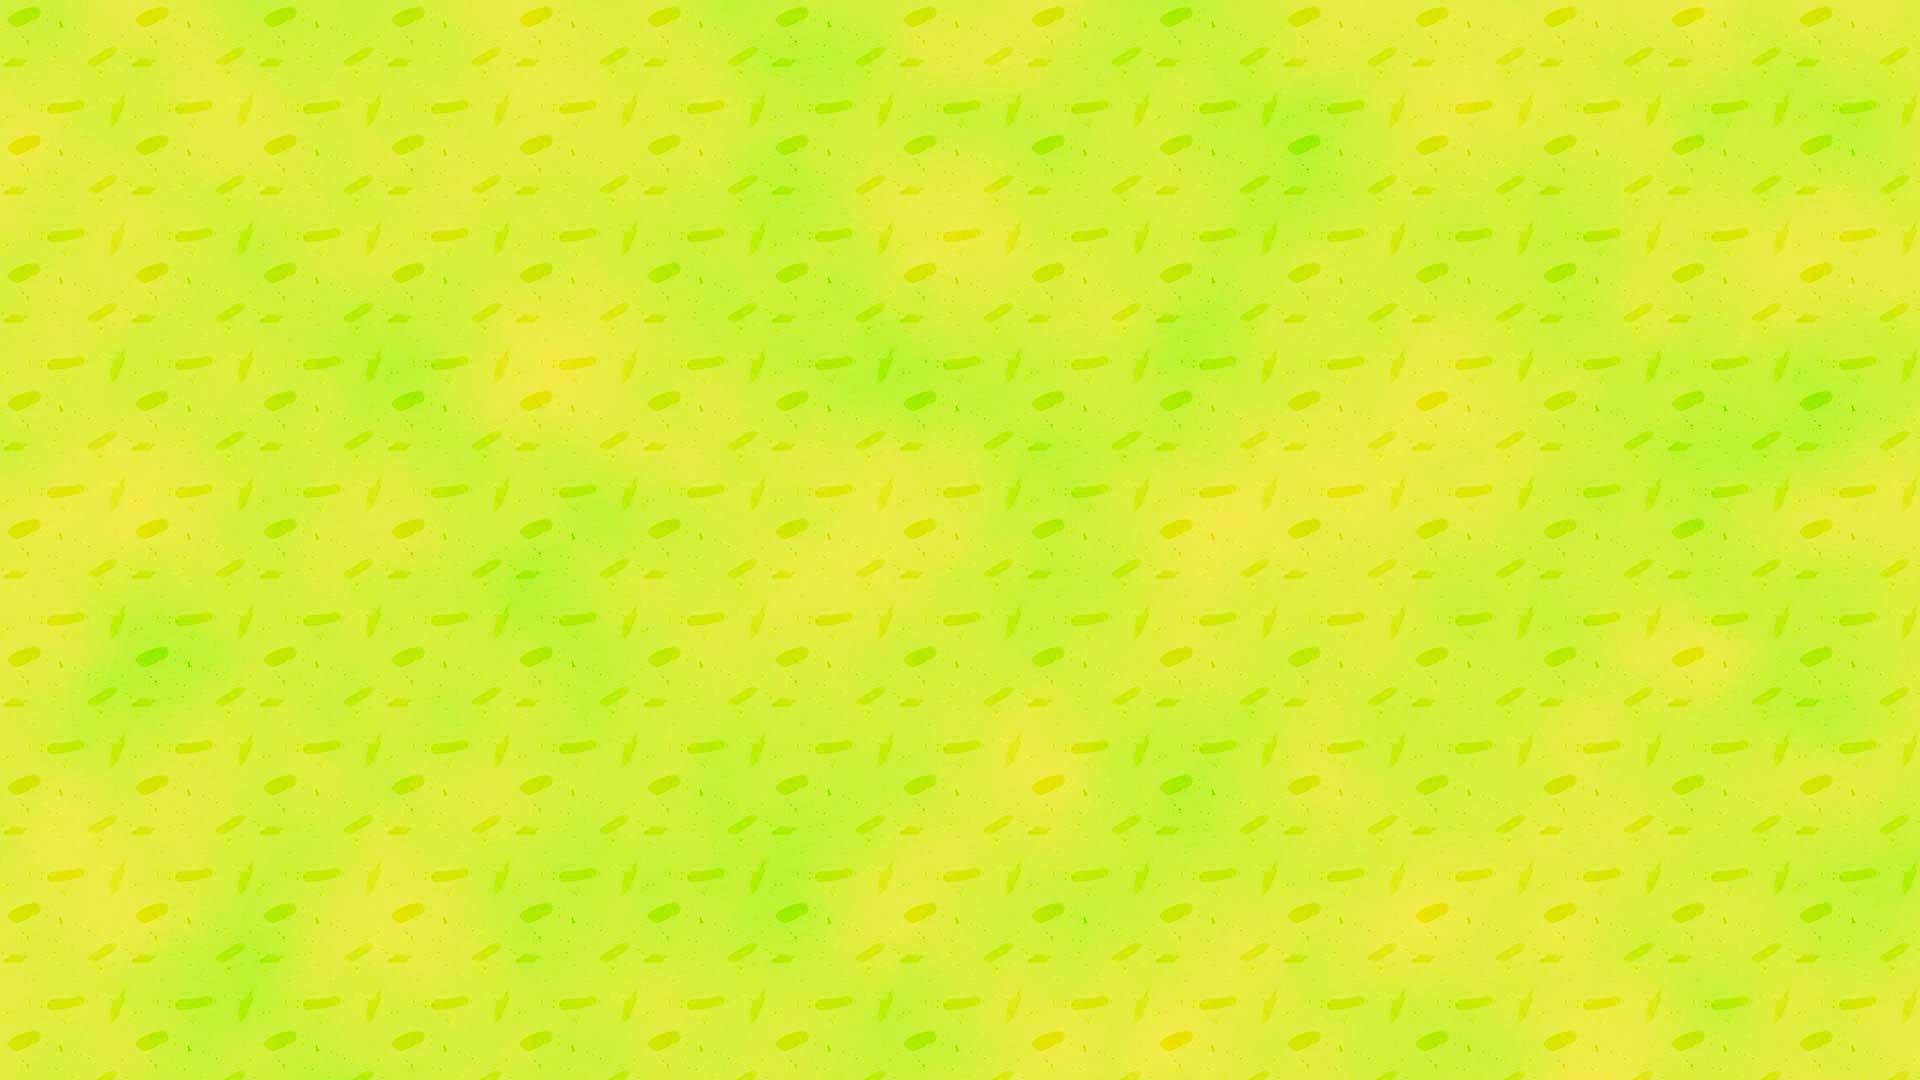 Green Yellow Background Images Yellow And Green Pattern